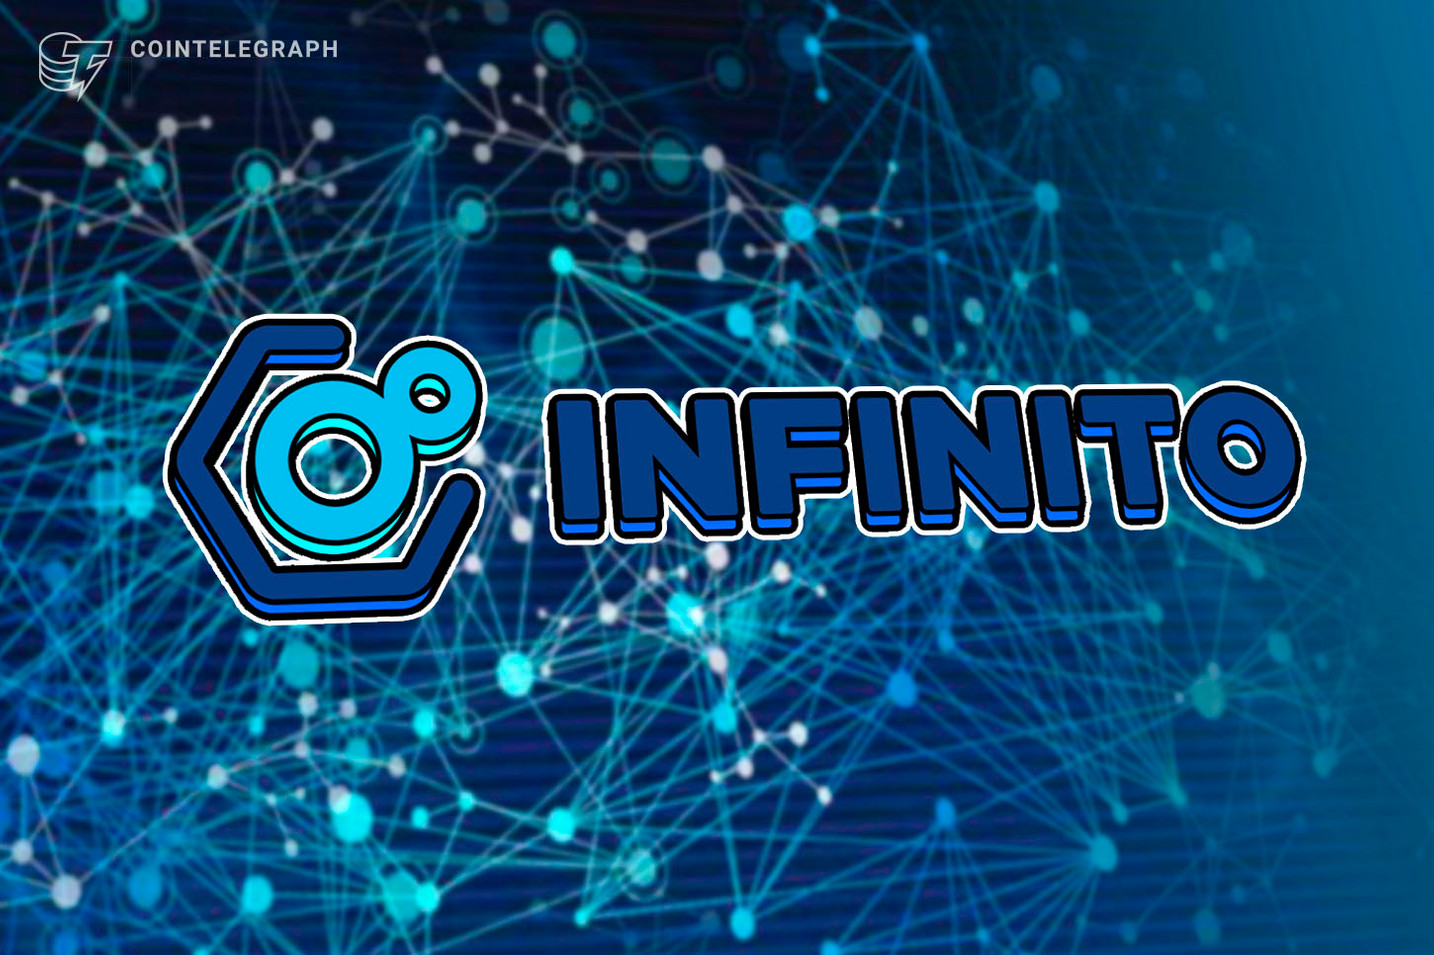 Industry Leader Infinito to Issue Infinito Points with Community-chosen Benefits